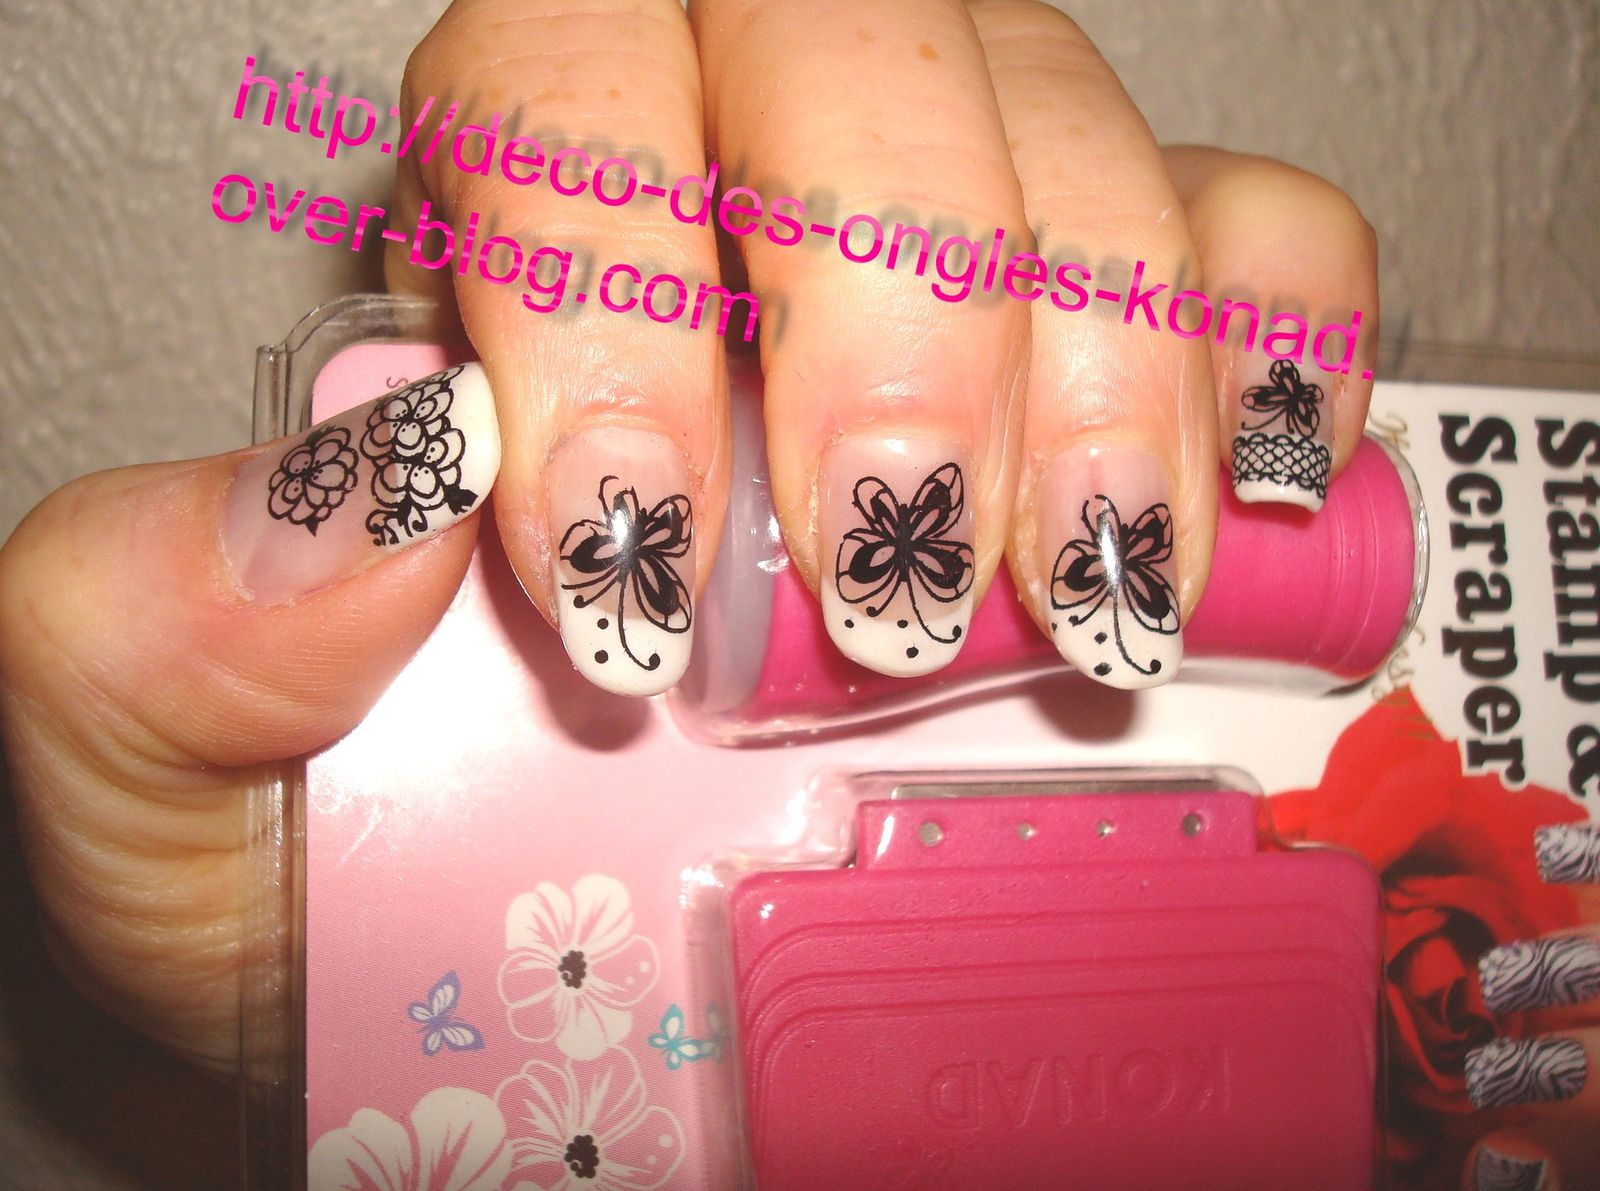 Decoration Ongle Nail Art Idées Pour Décorer Vos Ongles Nail Art Stamping Konad Onglissimo